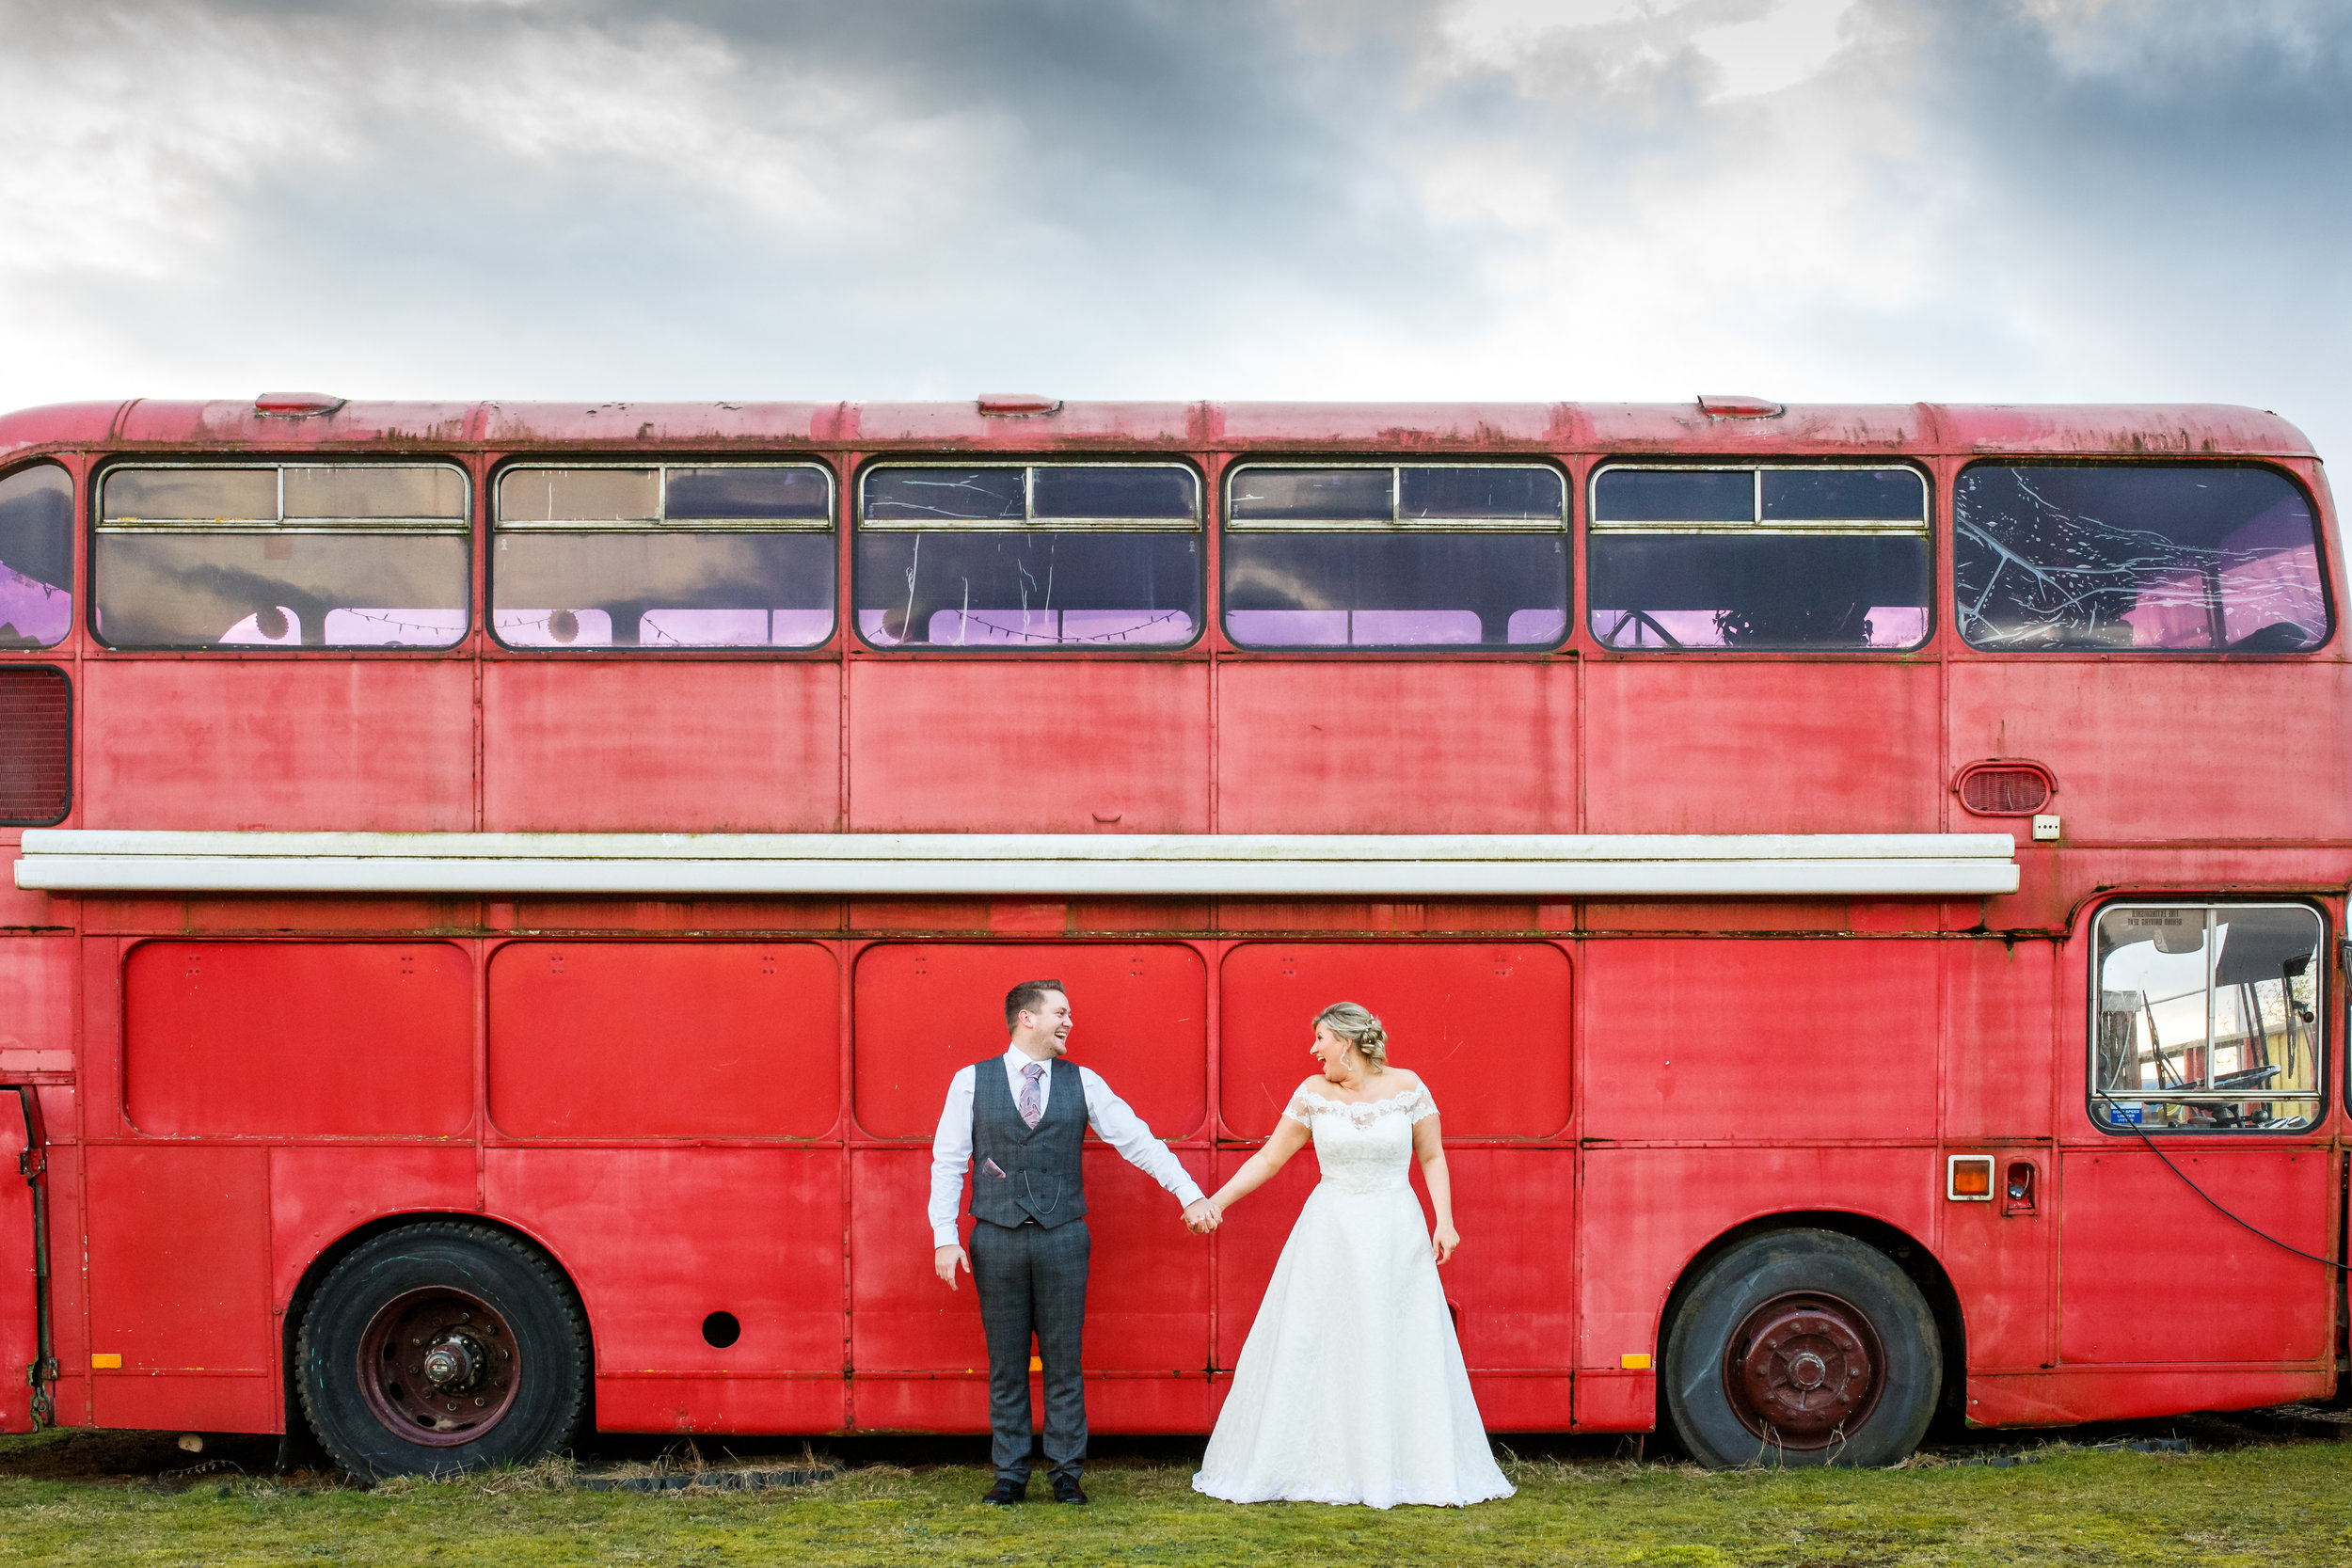 Fun wedding with double decker bus